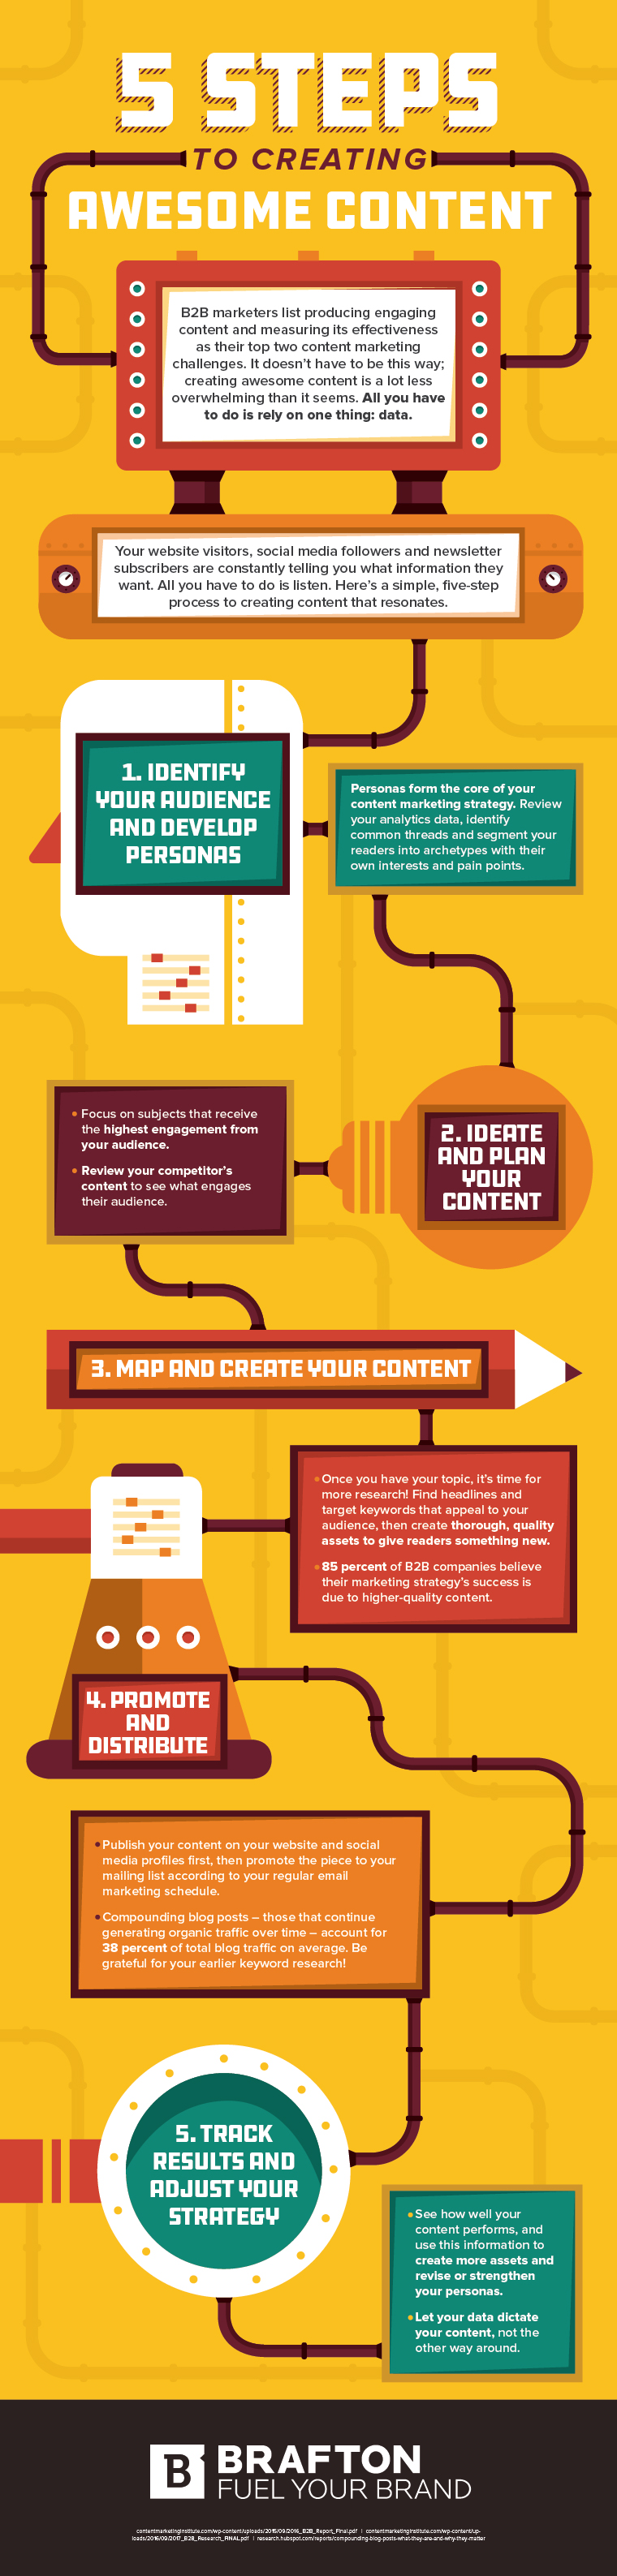 How To Create Awesome Content In 5 Easy Steps